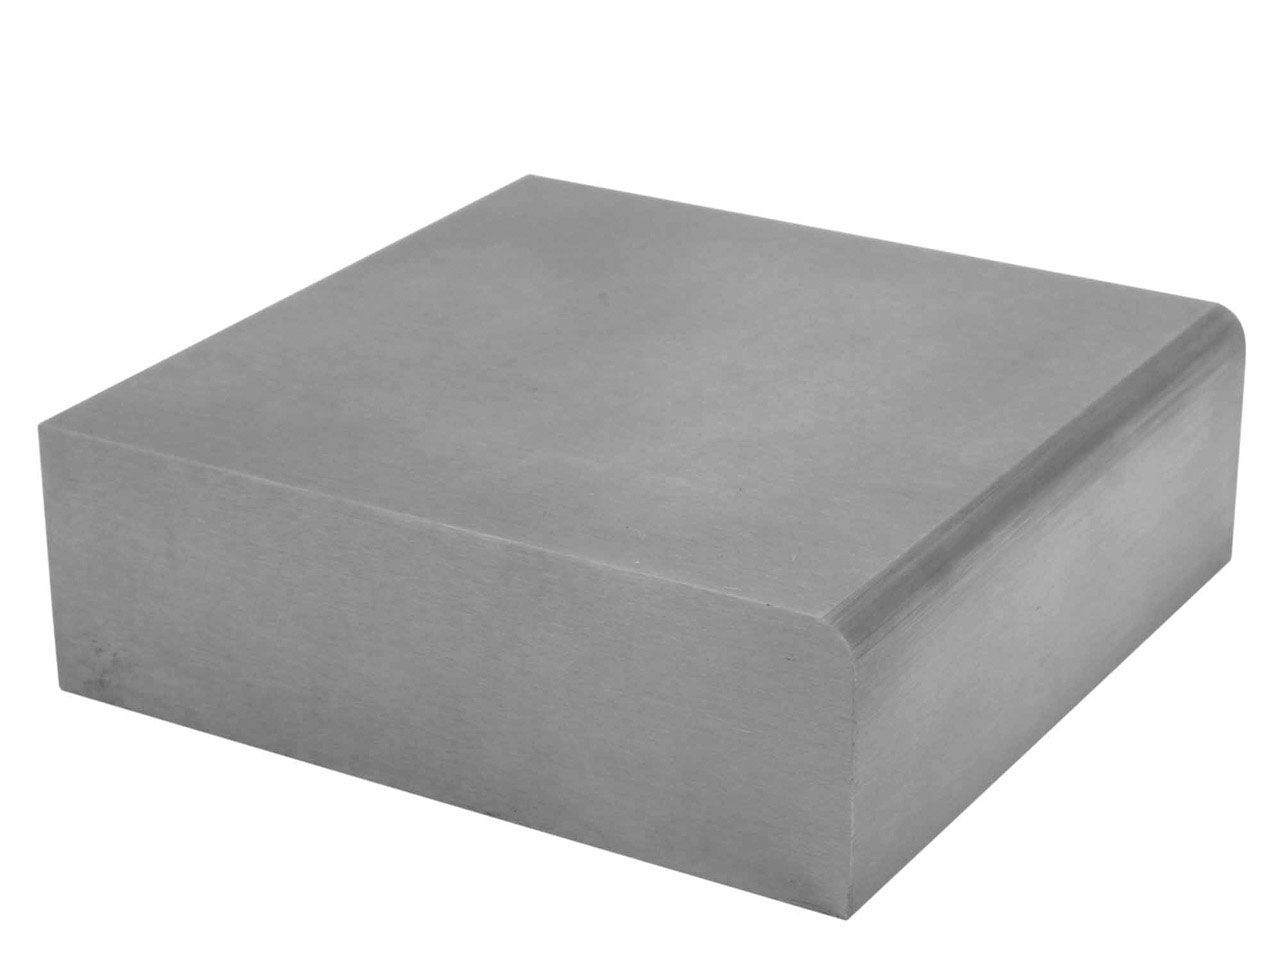 Durston Steel Bench Block, 6.5cm X 6.5cm